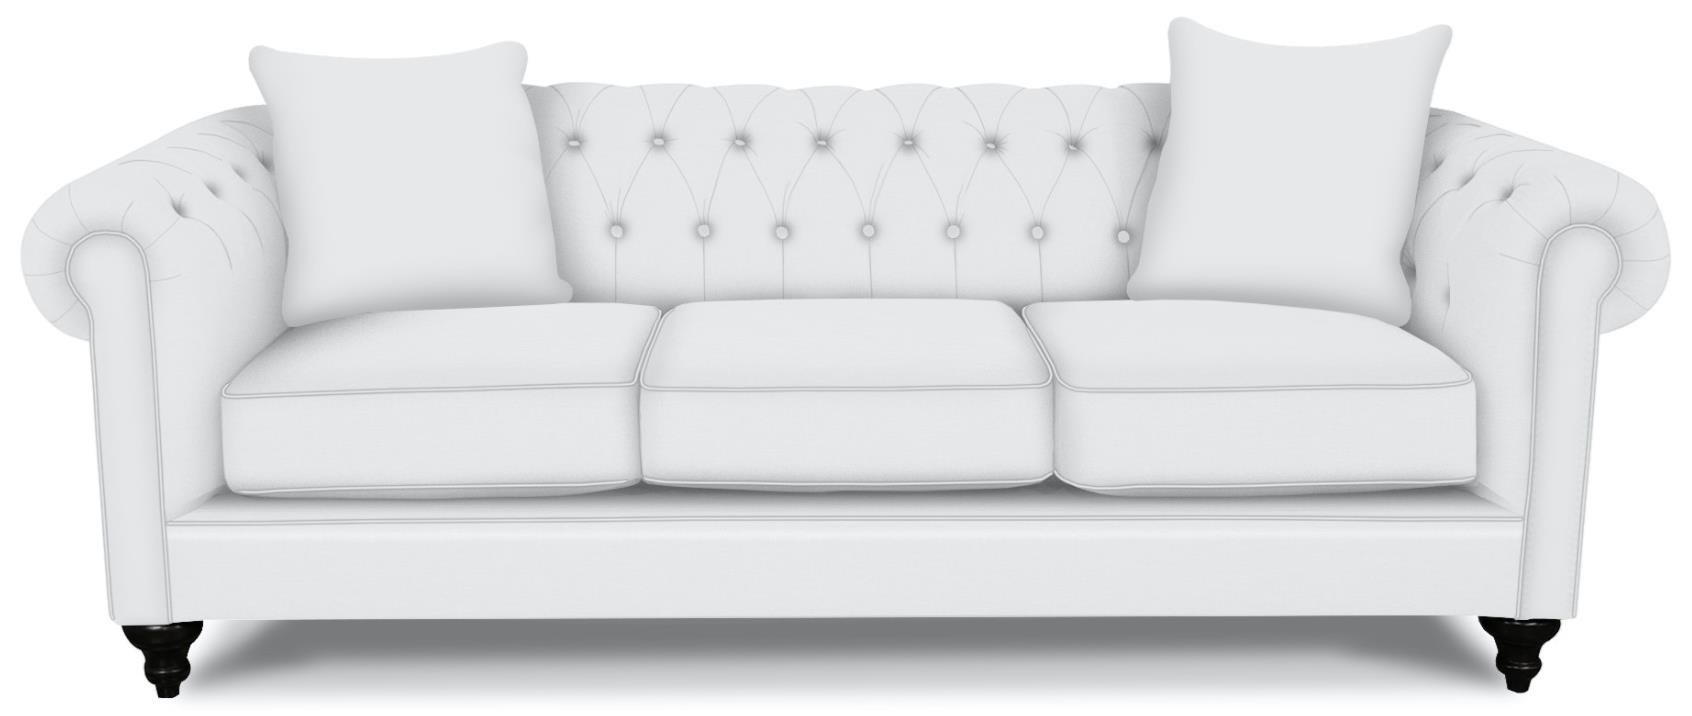 Chesterfield Sofa with Nailheads